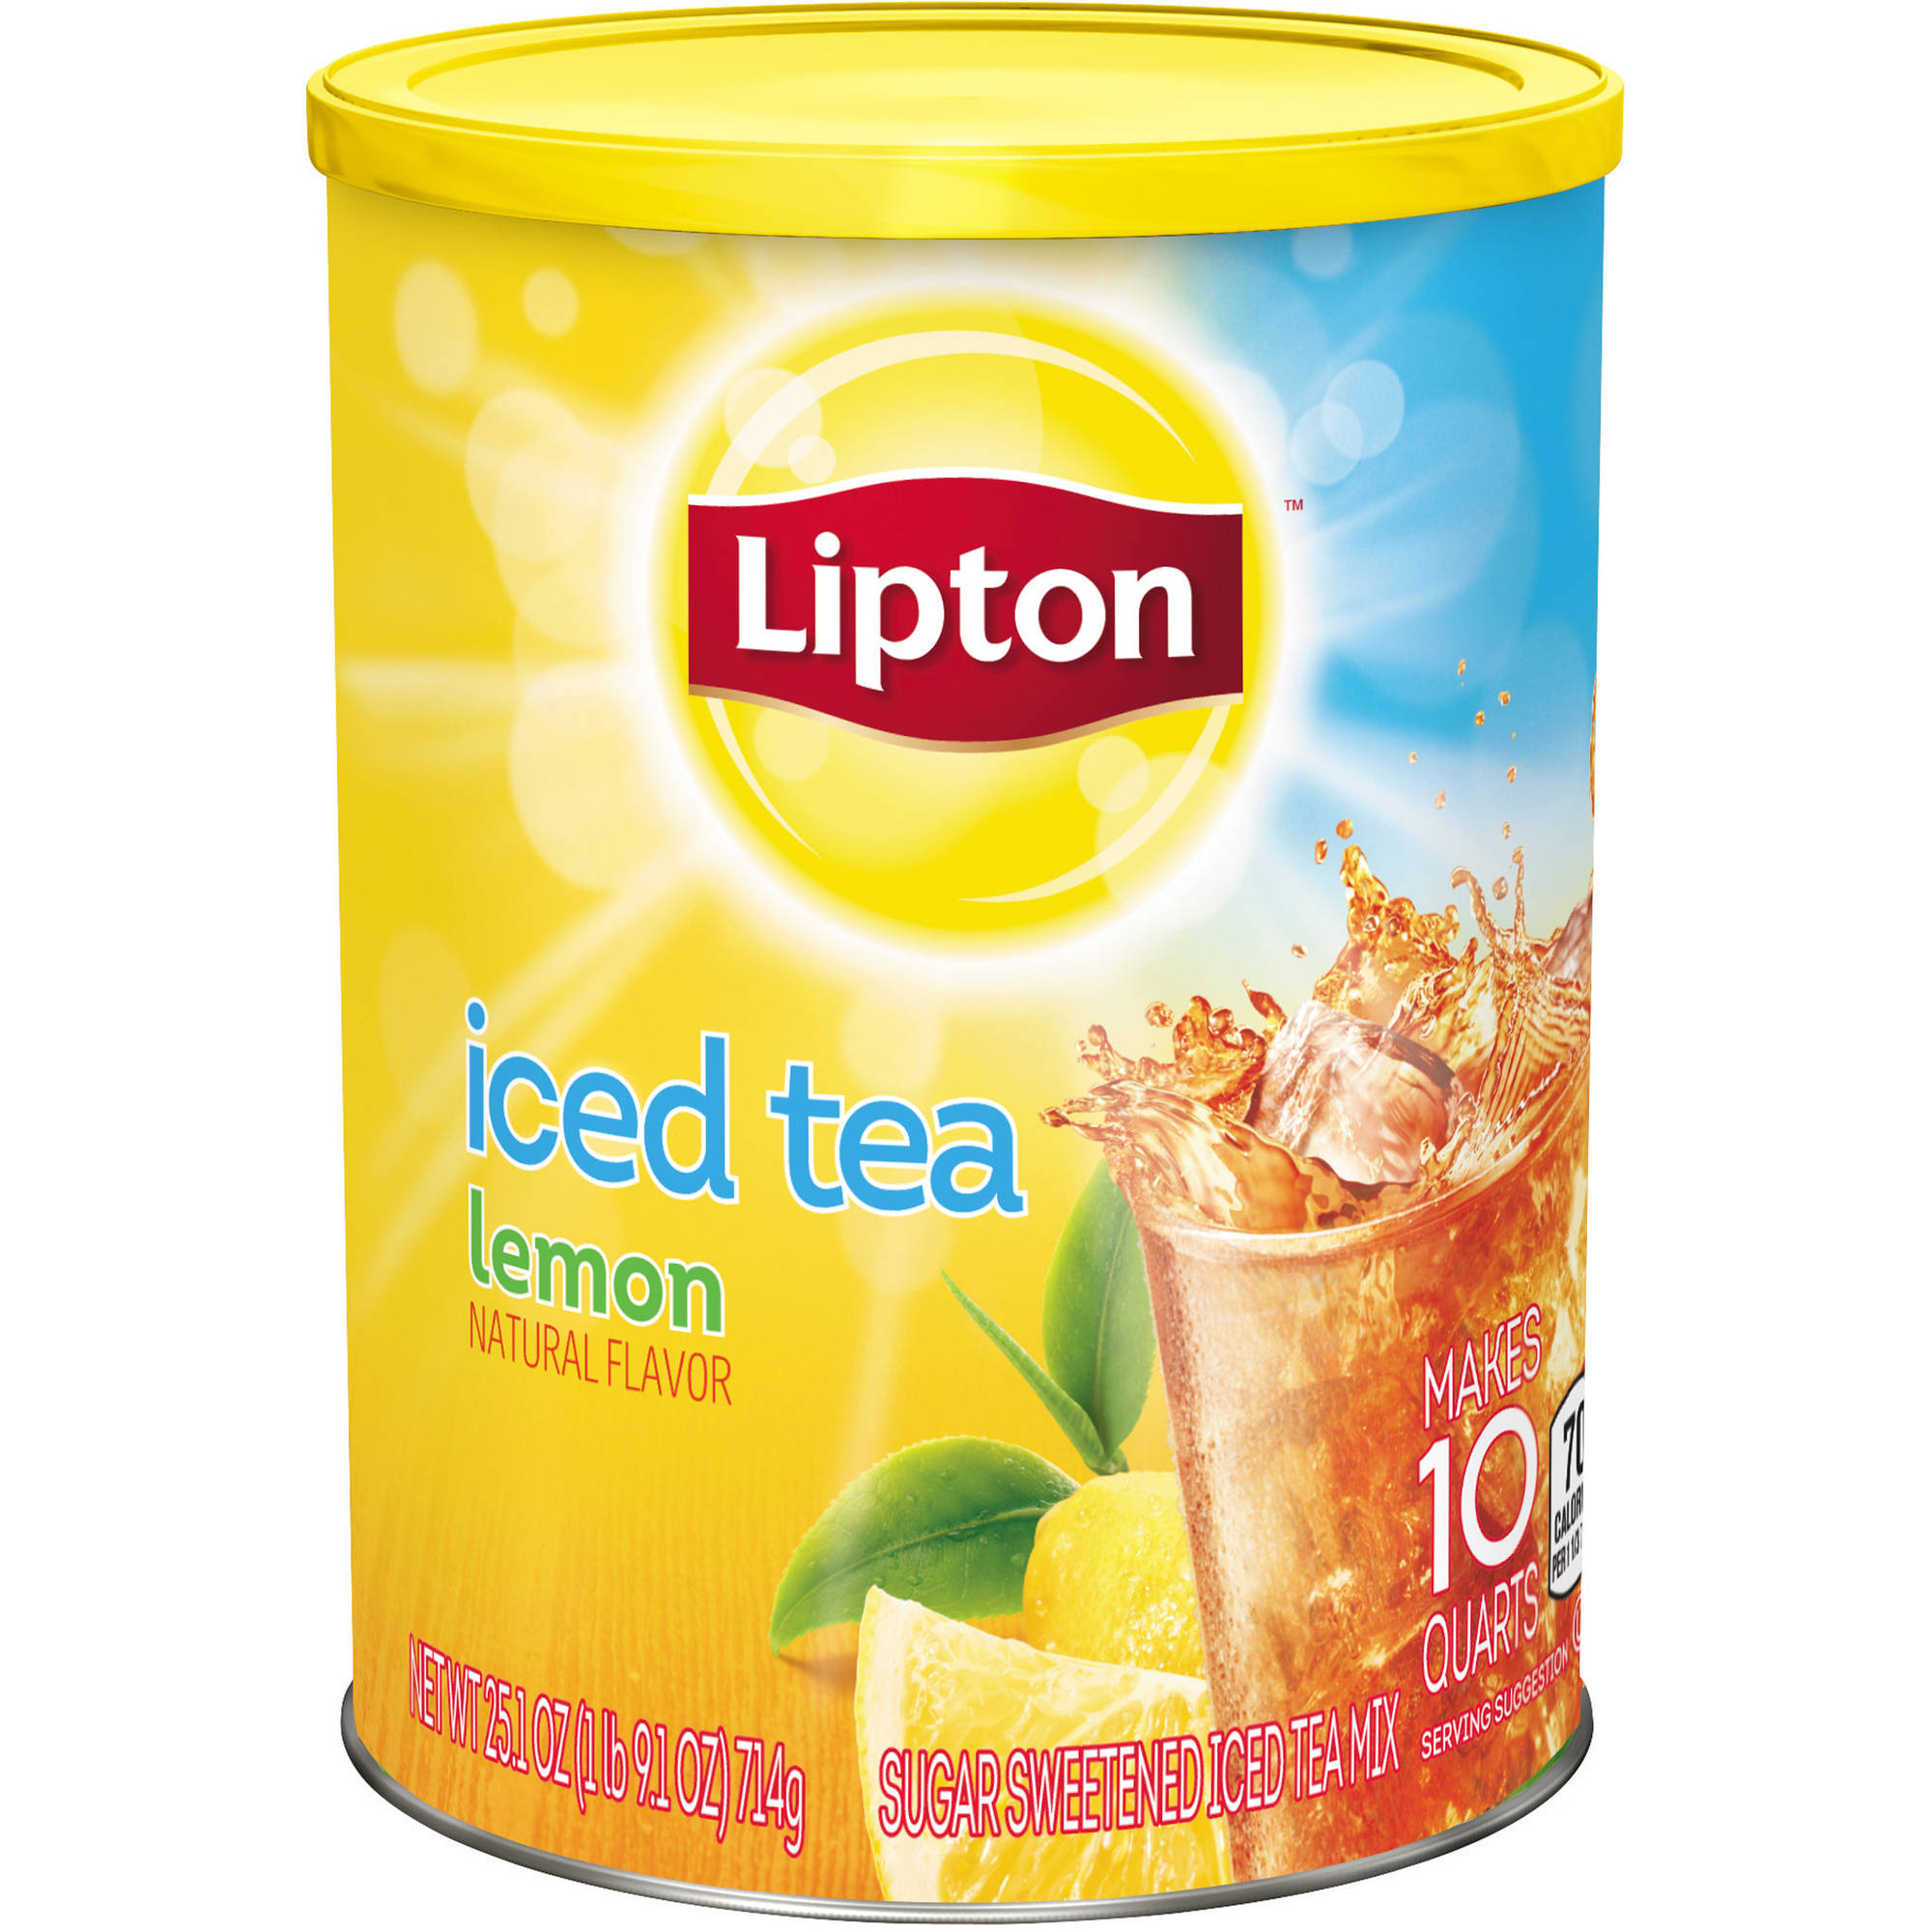 Lipton Lemon Iced Tea Mix, 10 qt